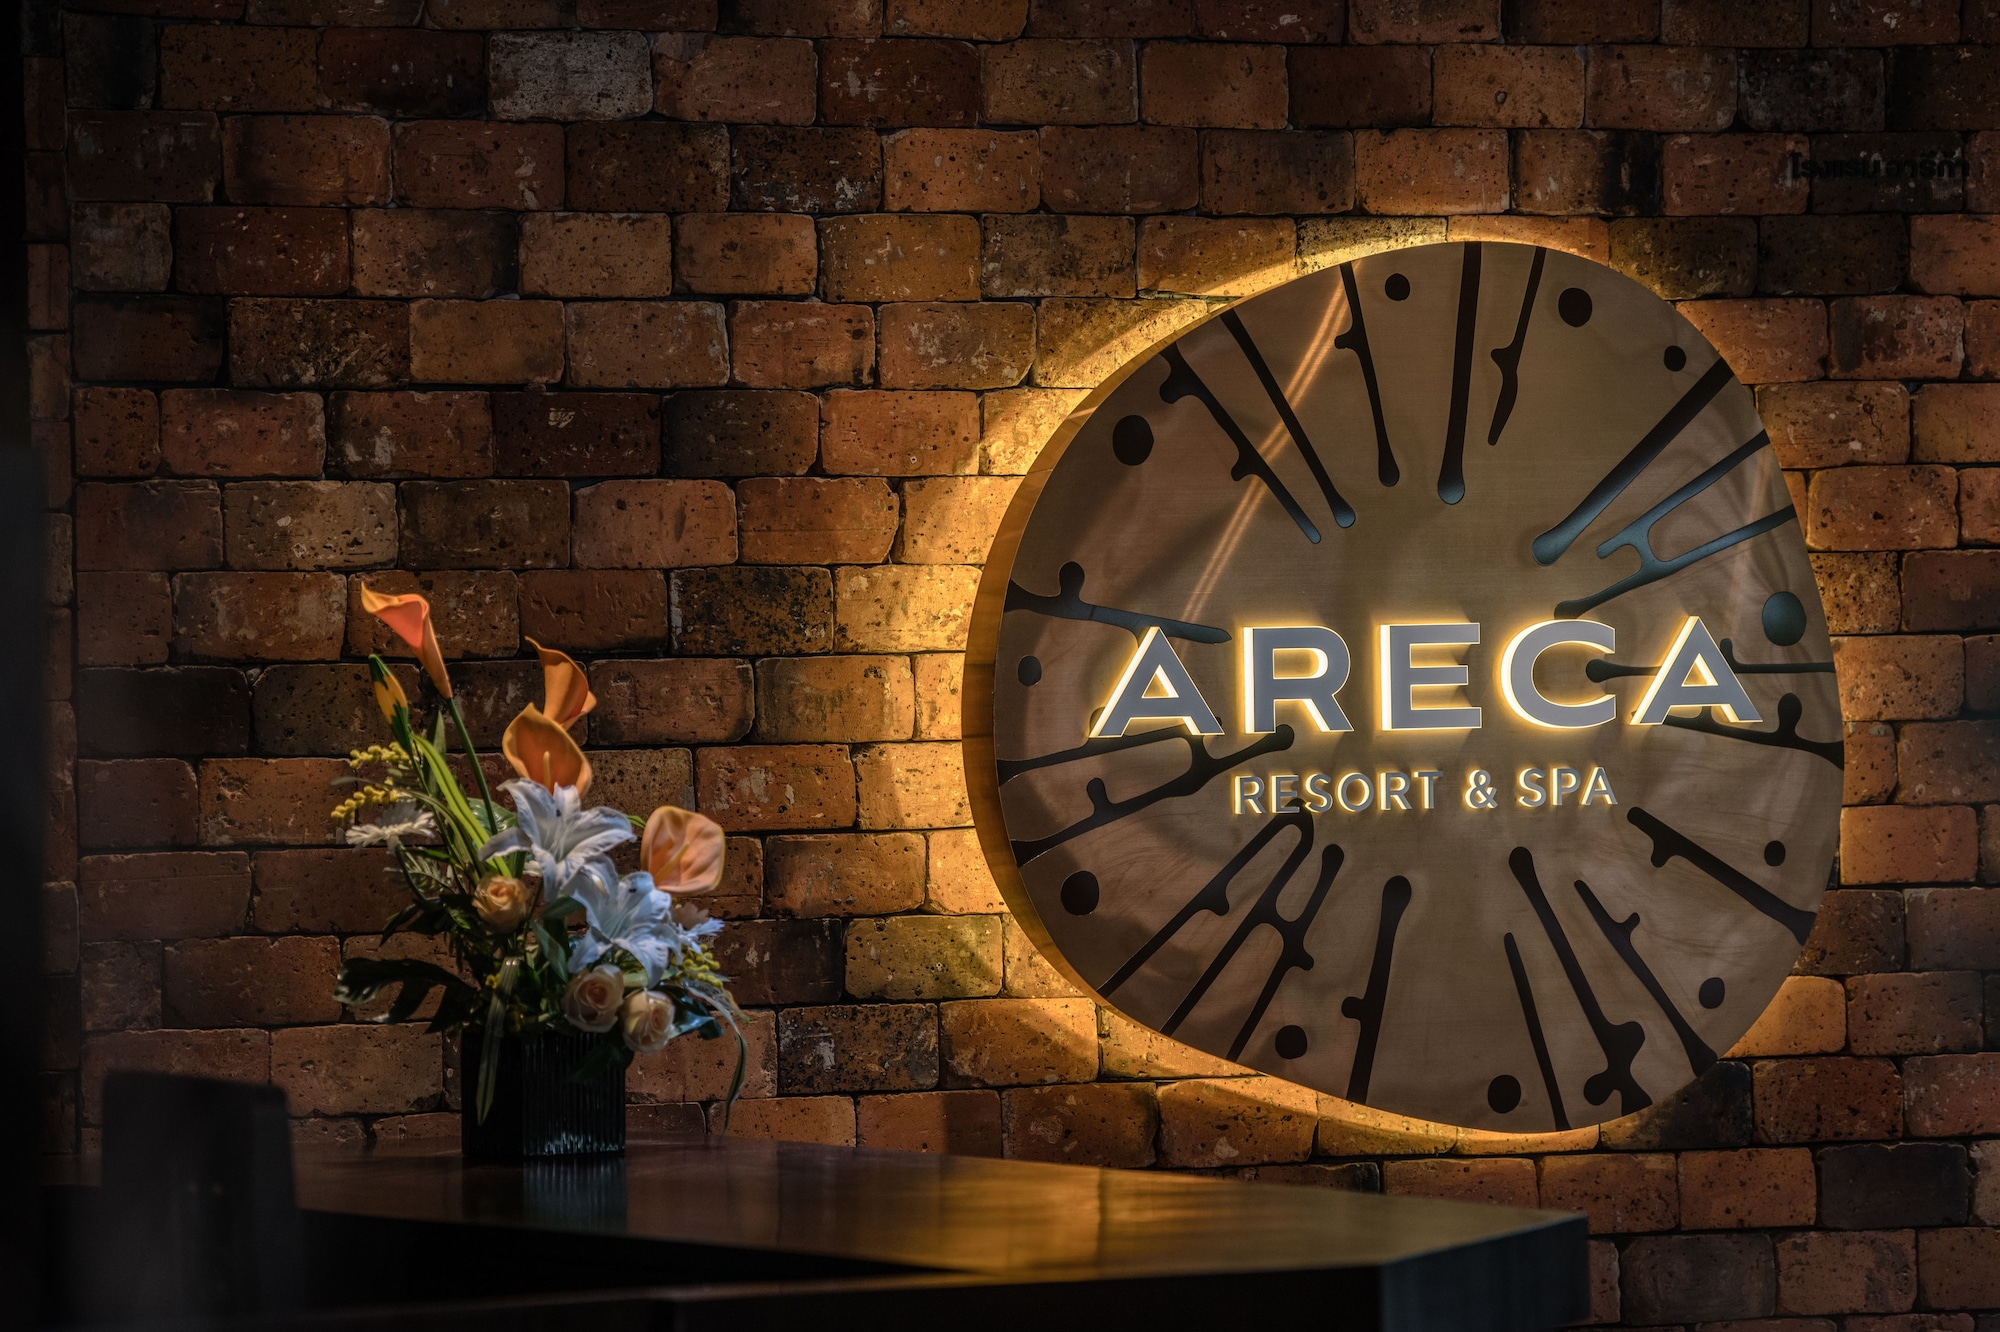 Areca Resort & Spa, Pulau Phuket